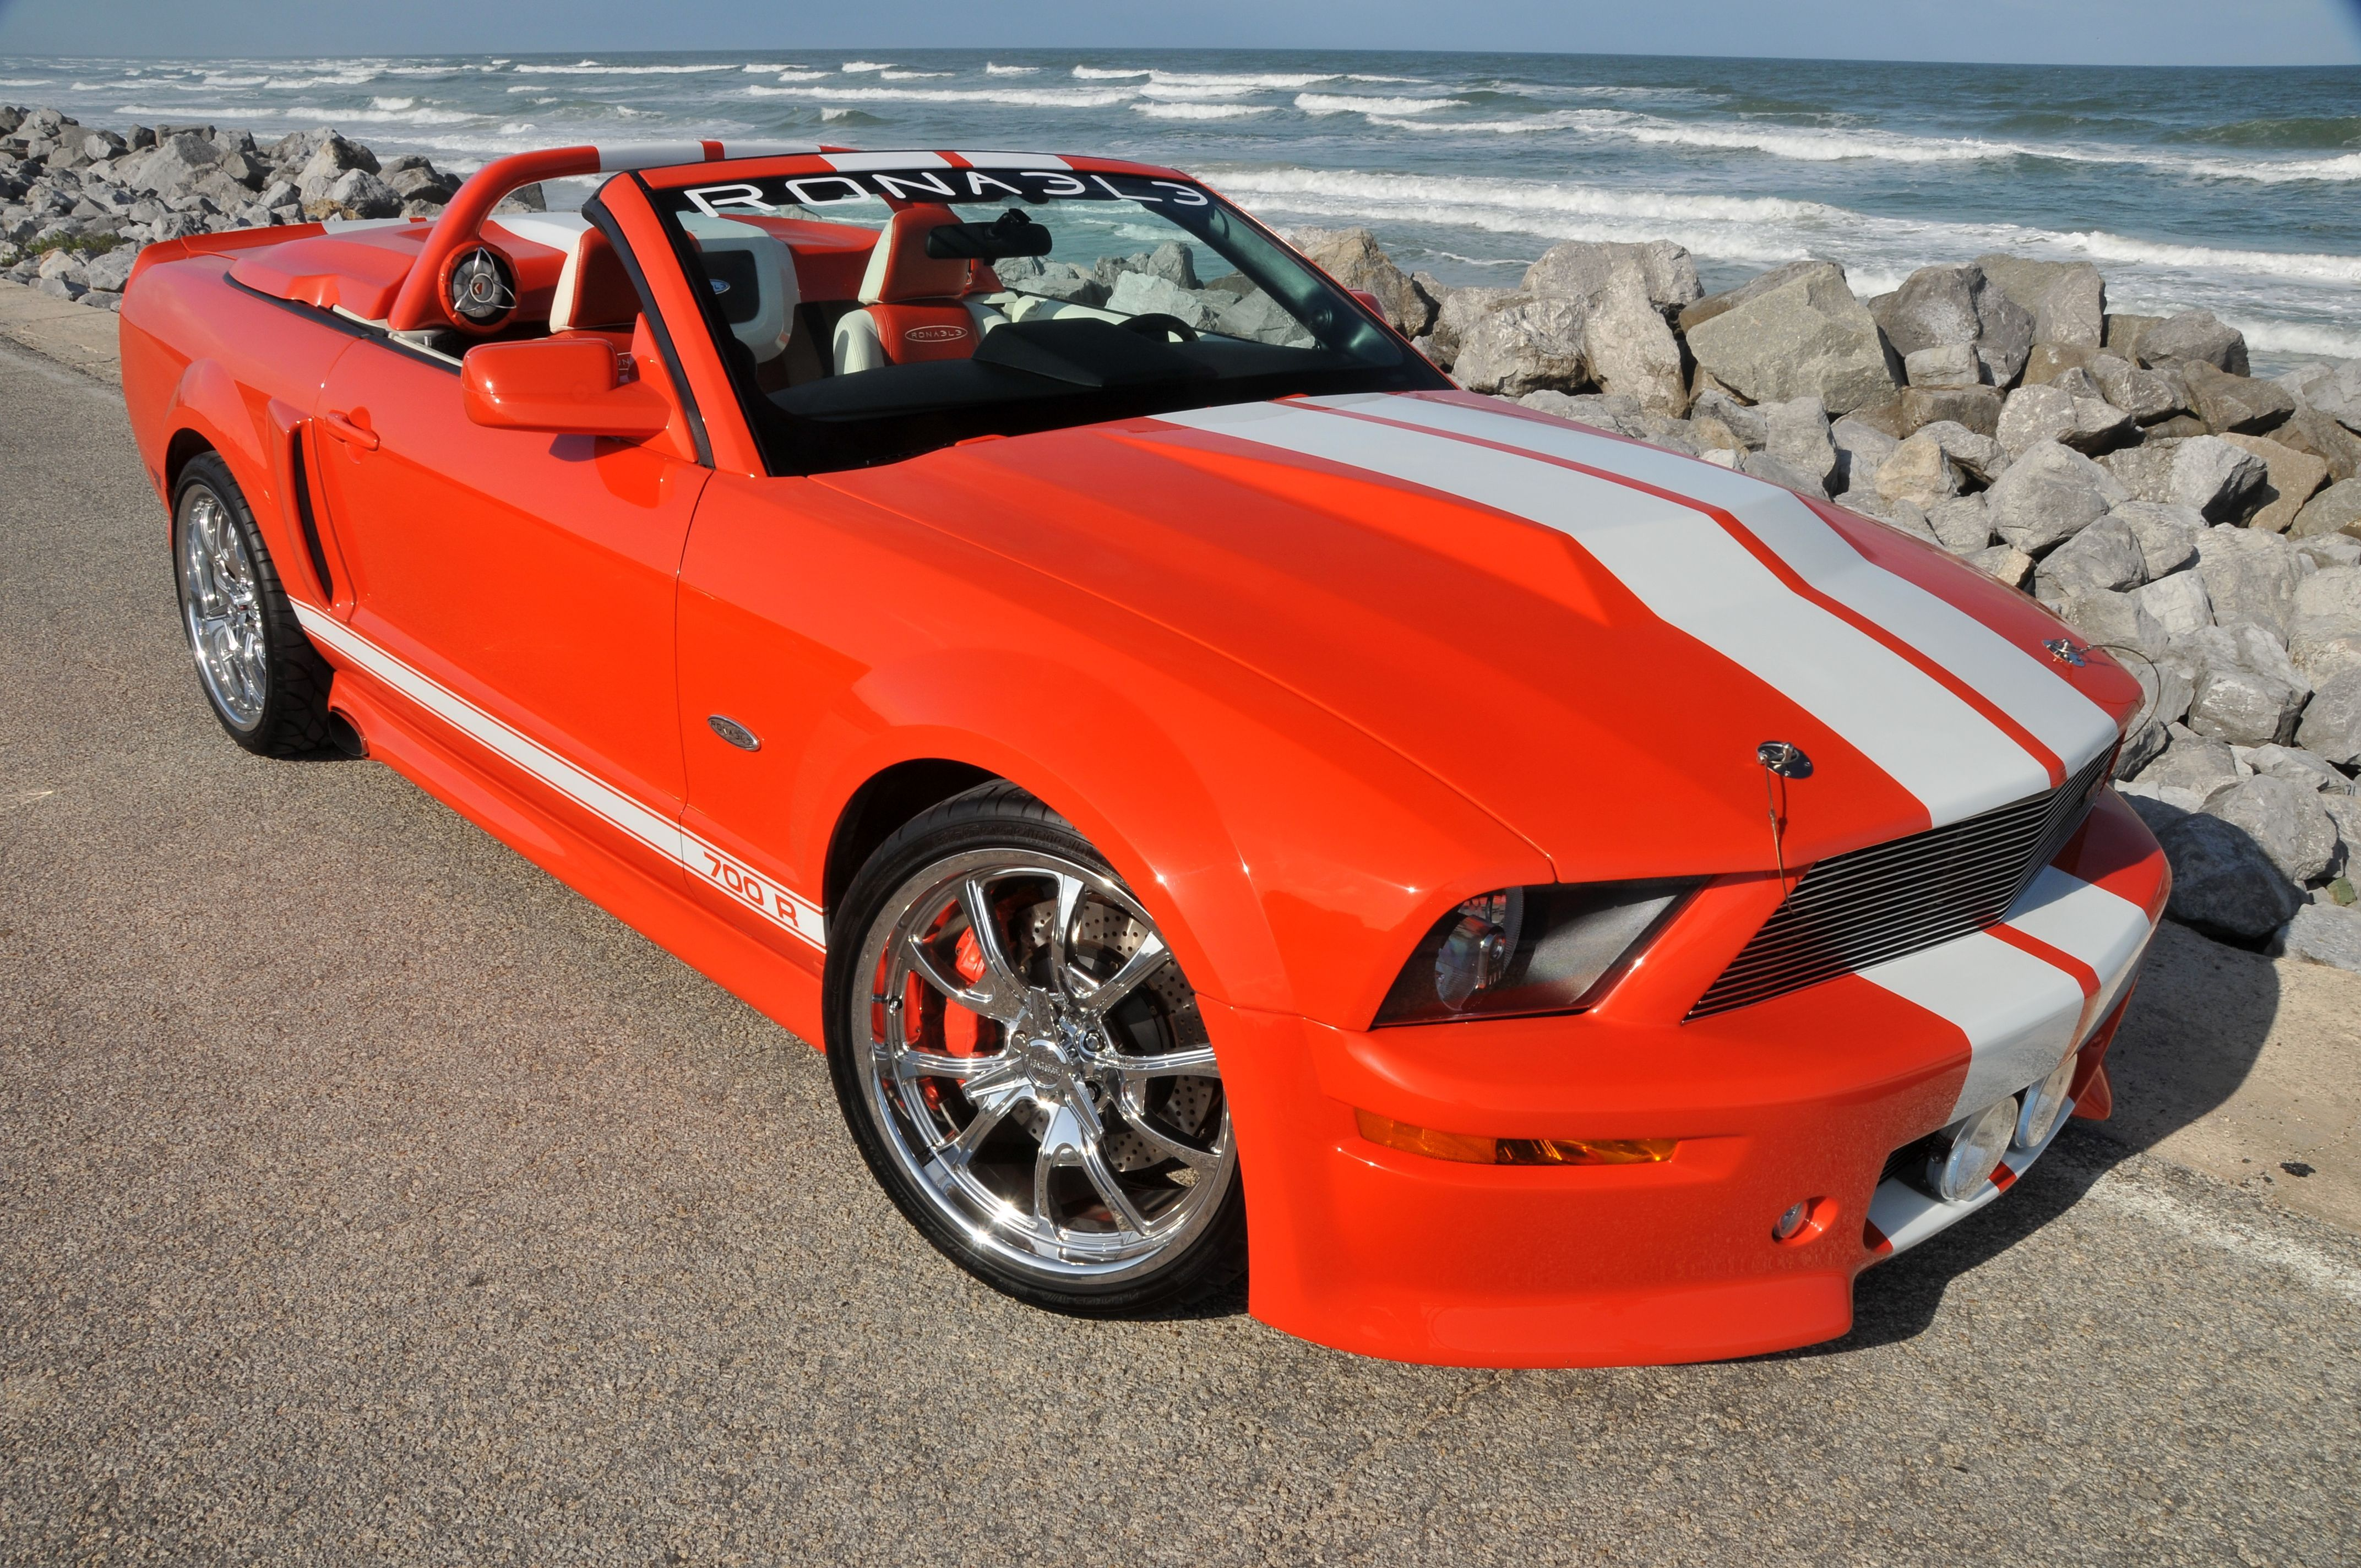 OrangeKrate's 2007 Ford Mustang